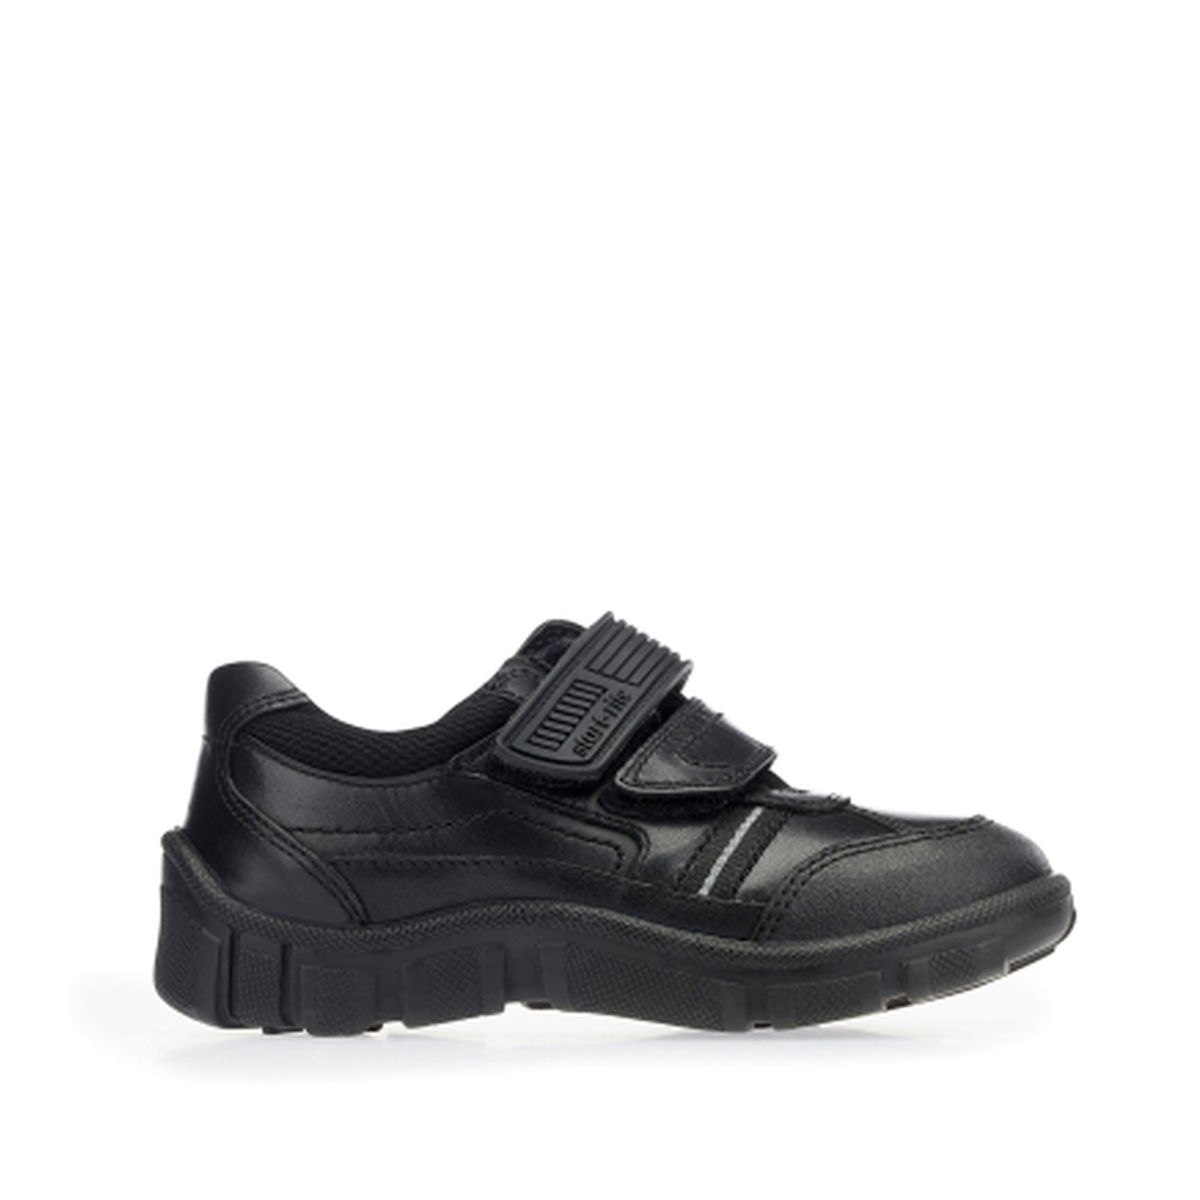 Start-rite Luke Boys School Shoe